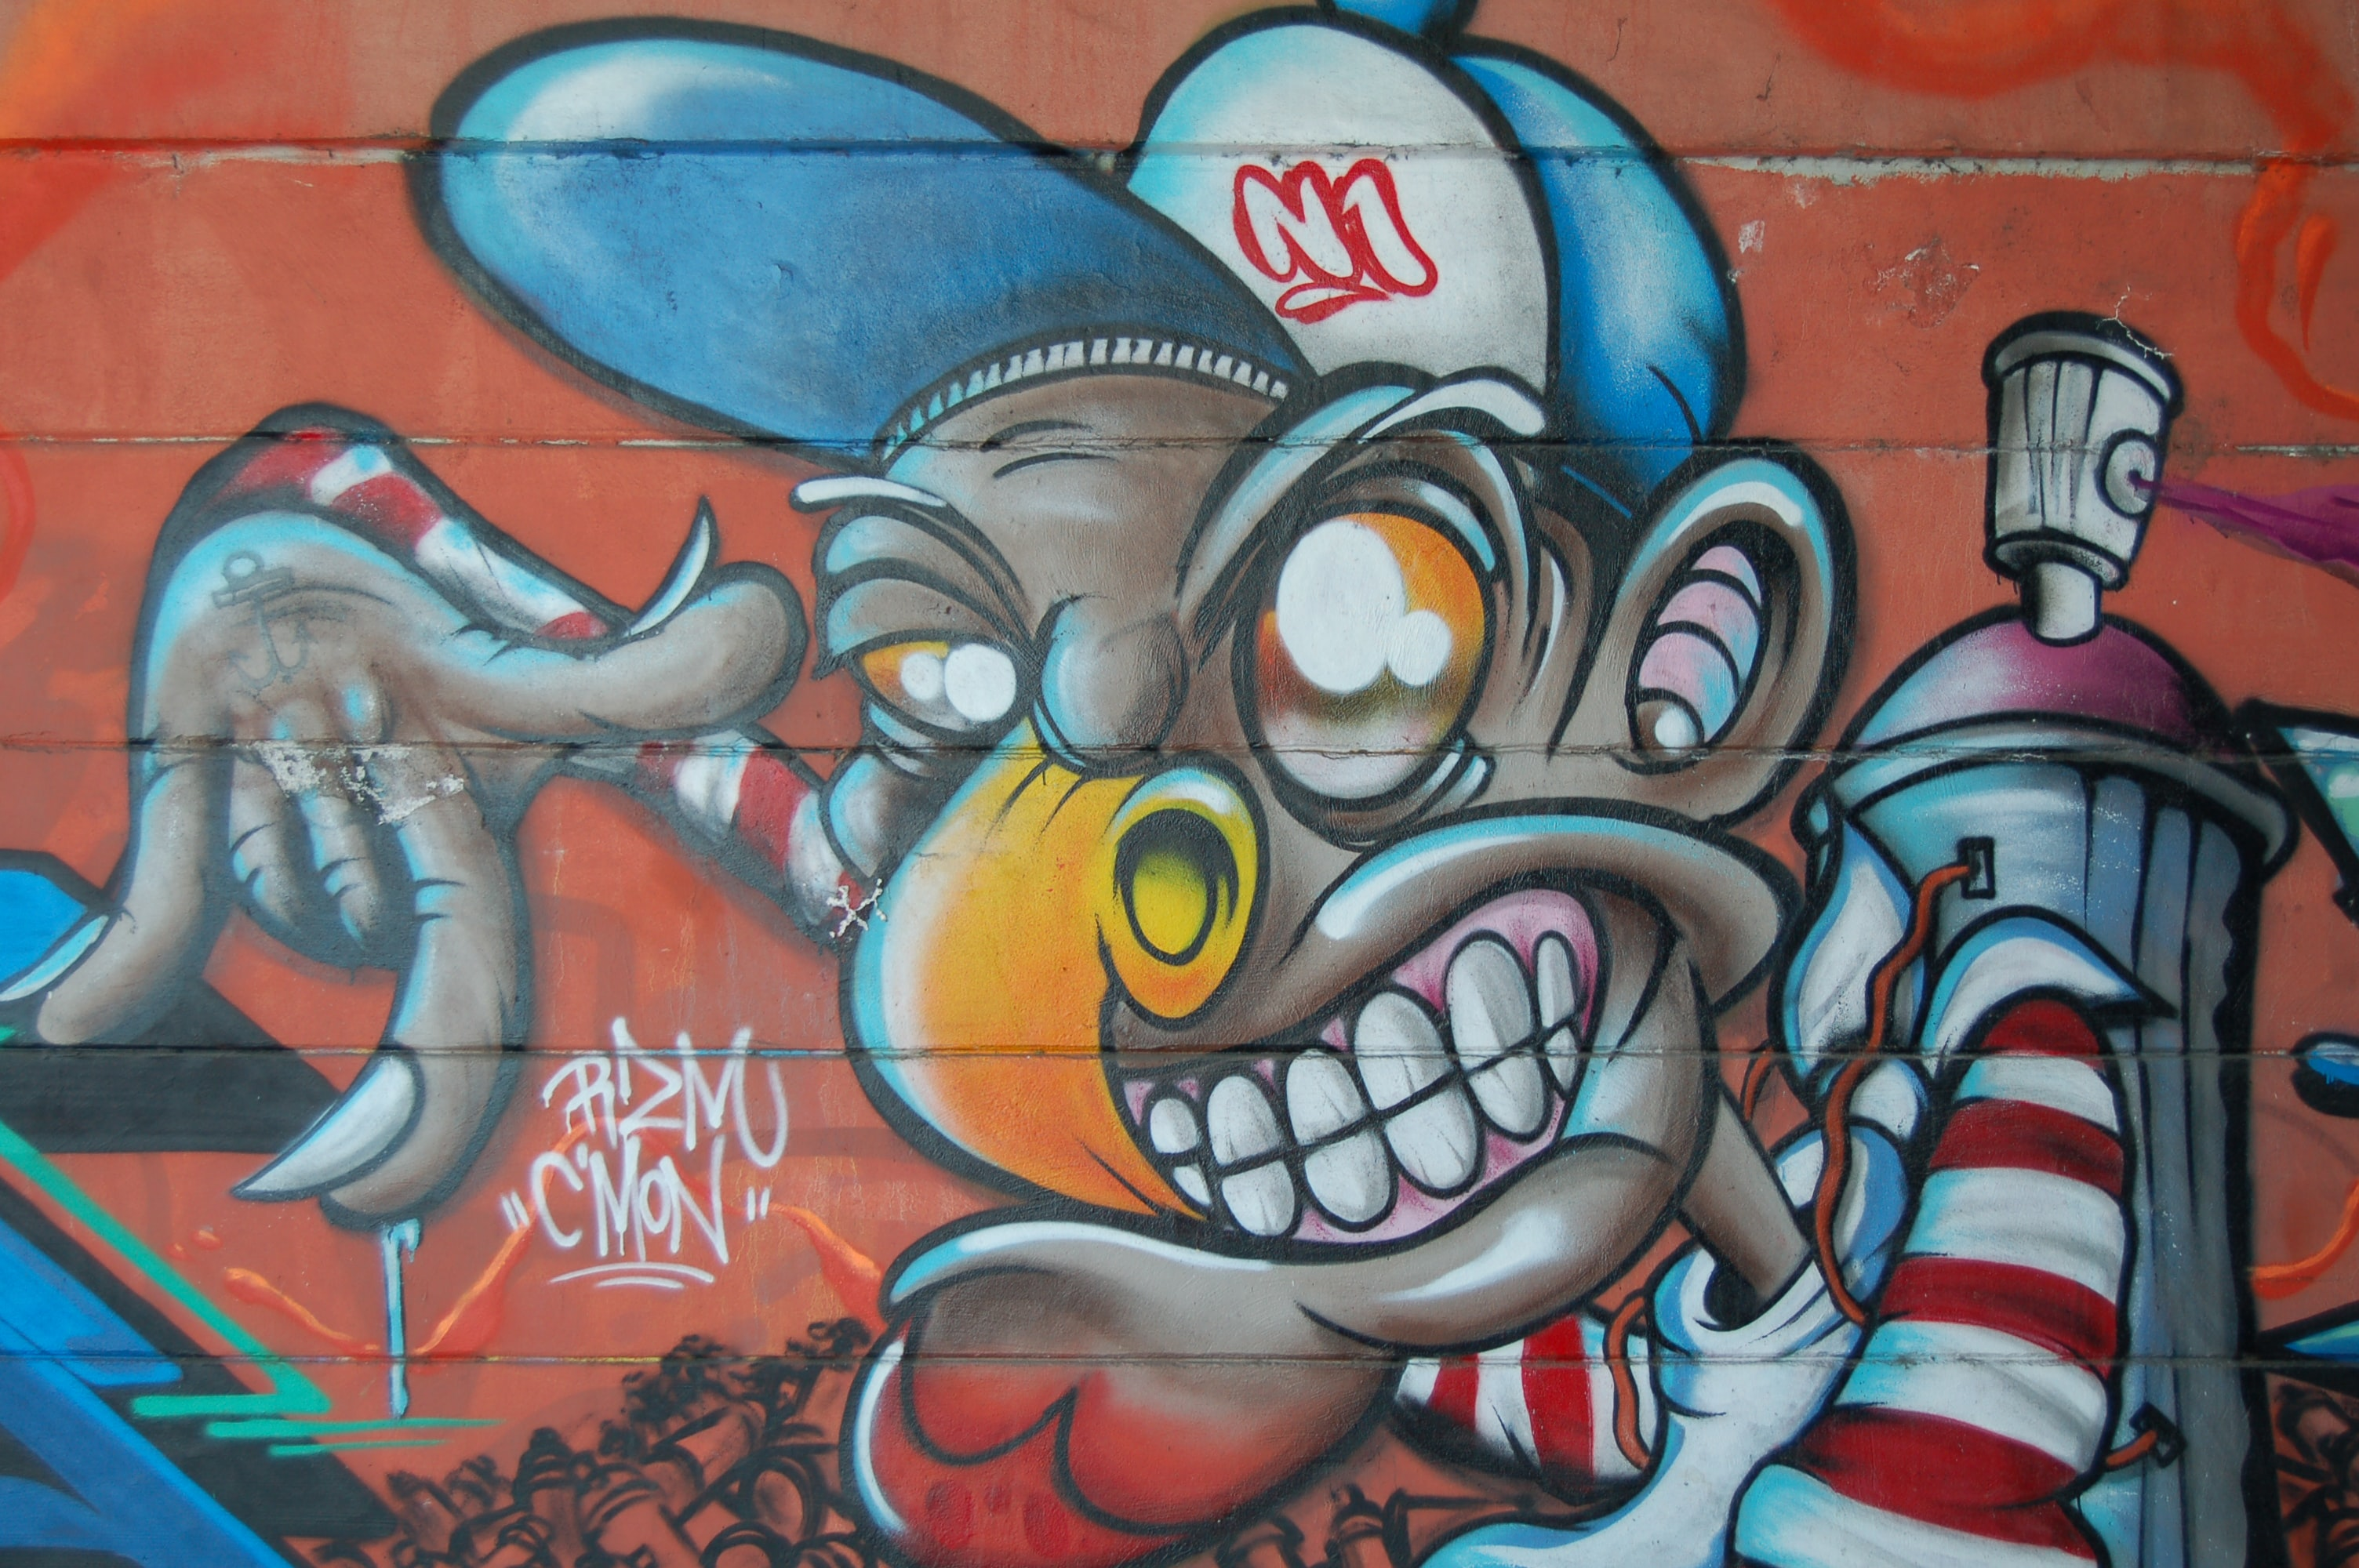 A caricature wall mural of an African American tagger.